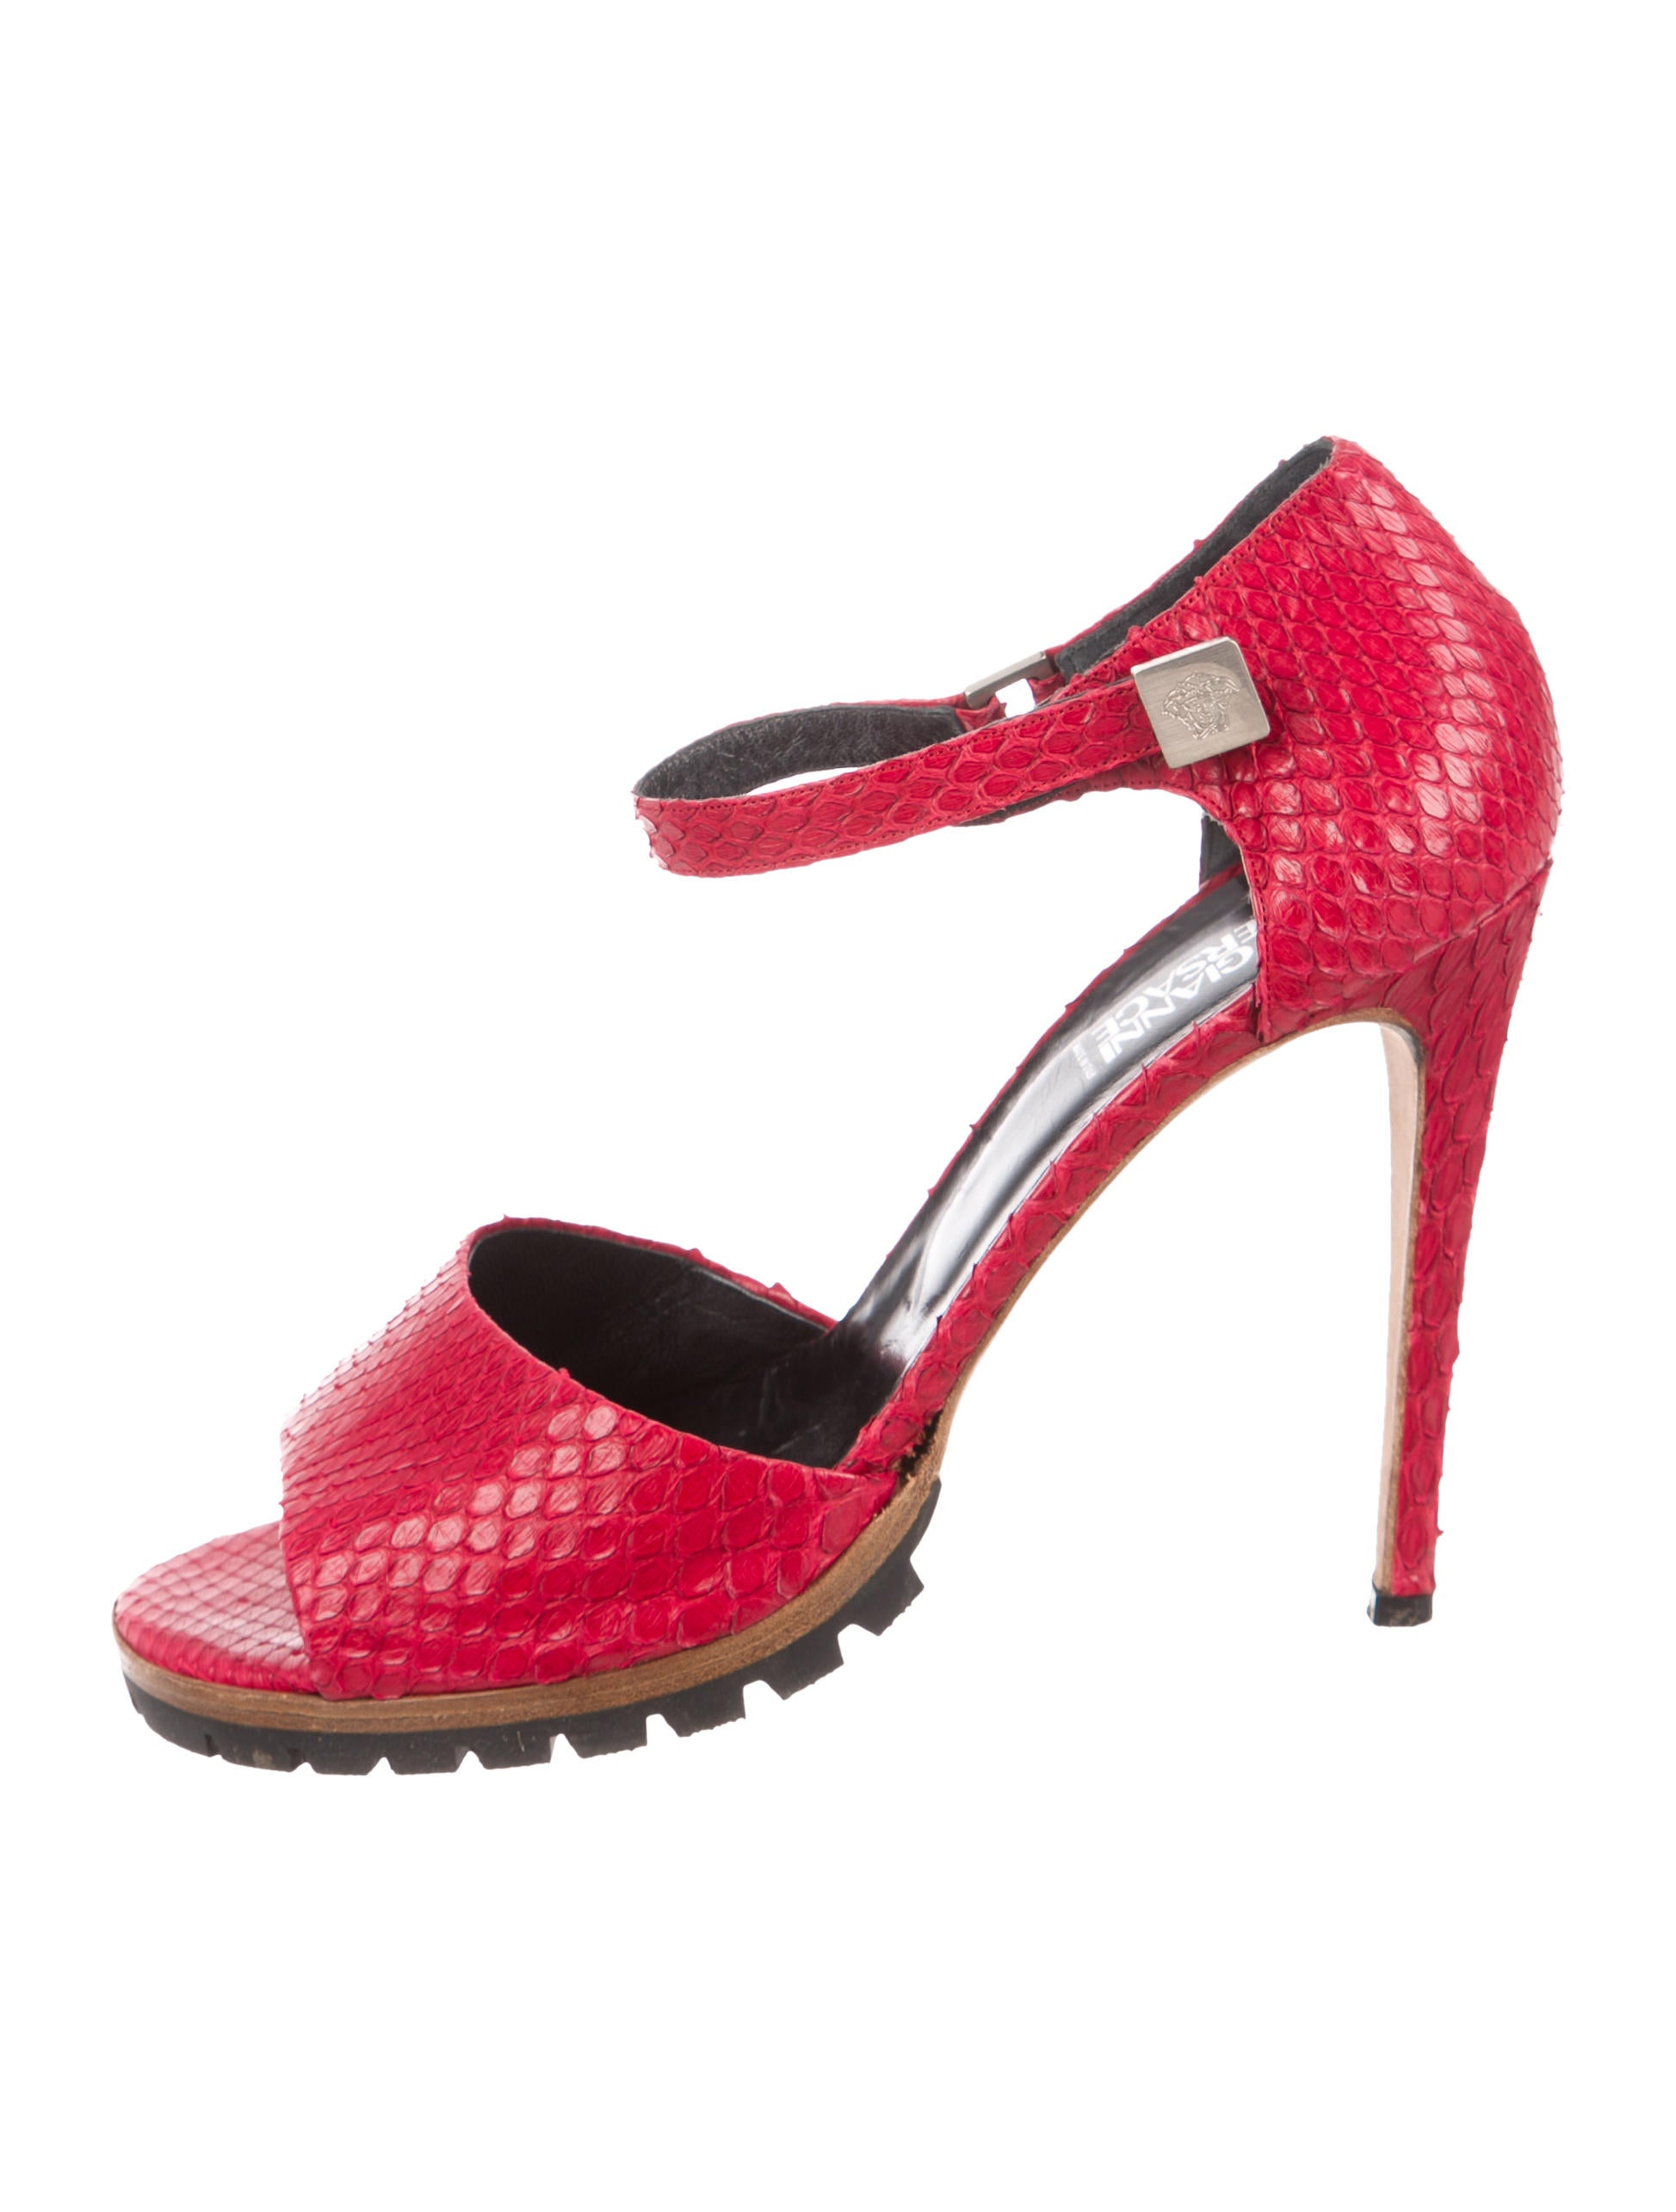 Gianni Versace Snakeskin Ankle Strap Sandals pay with paypal cheap sale with mastercard ssekVQ